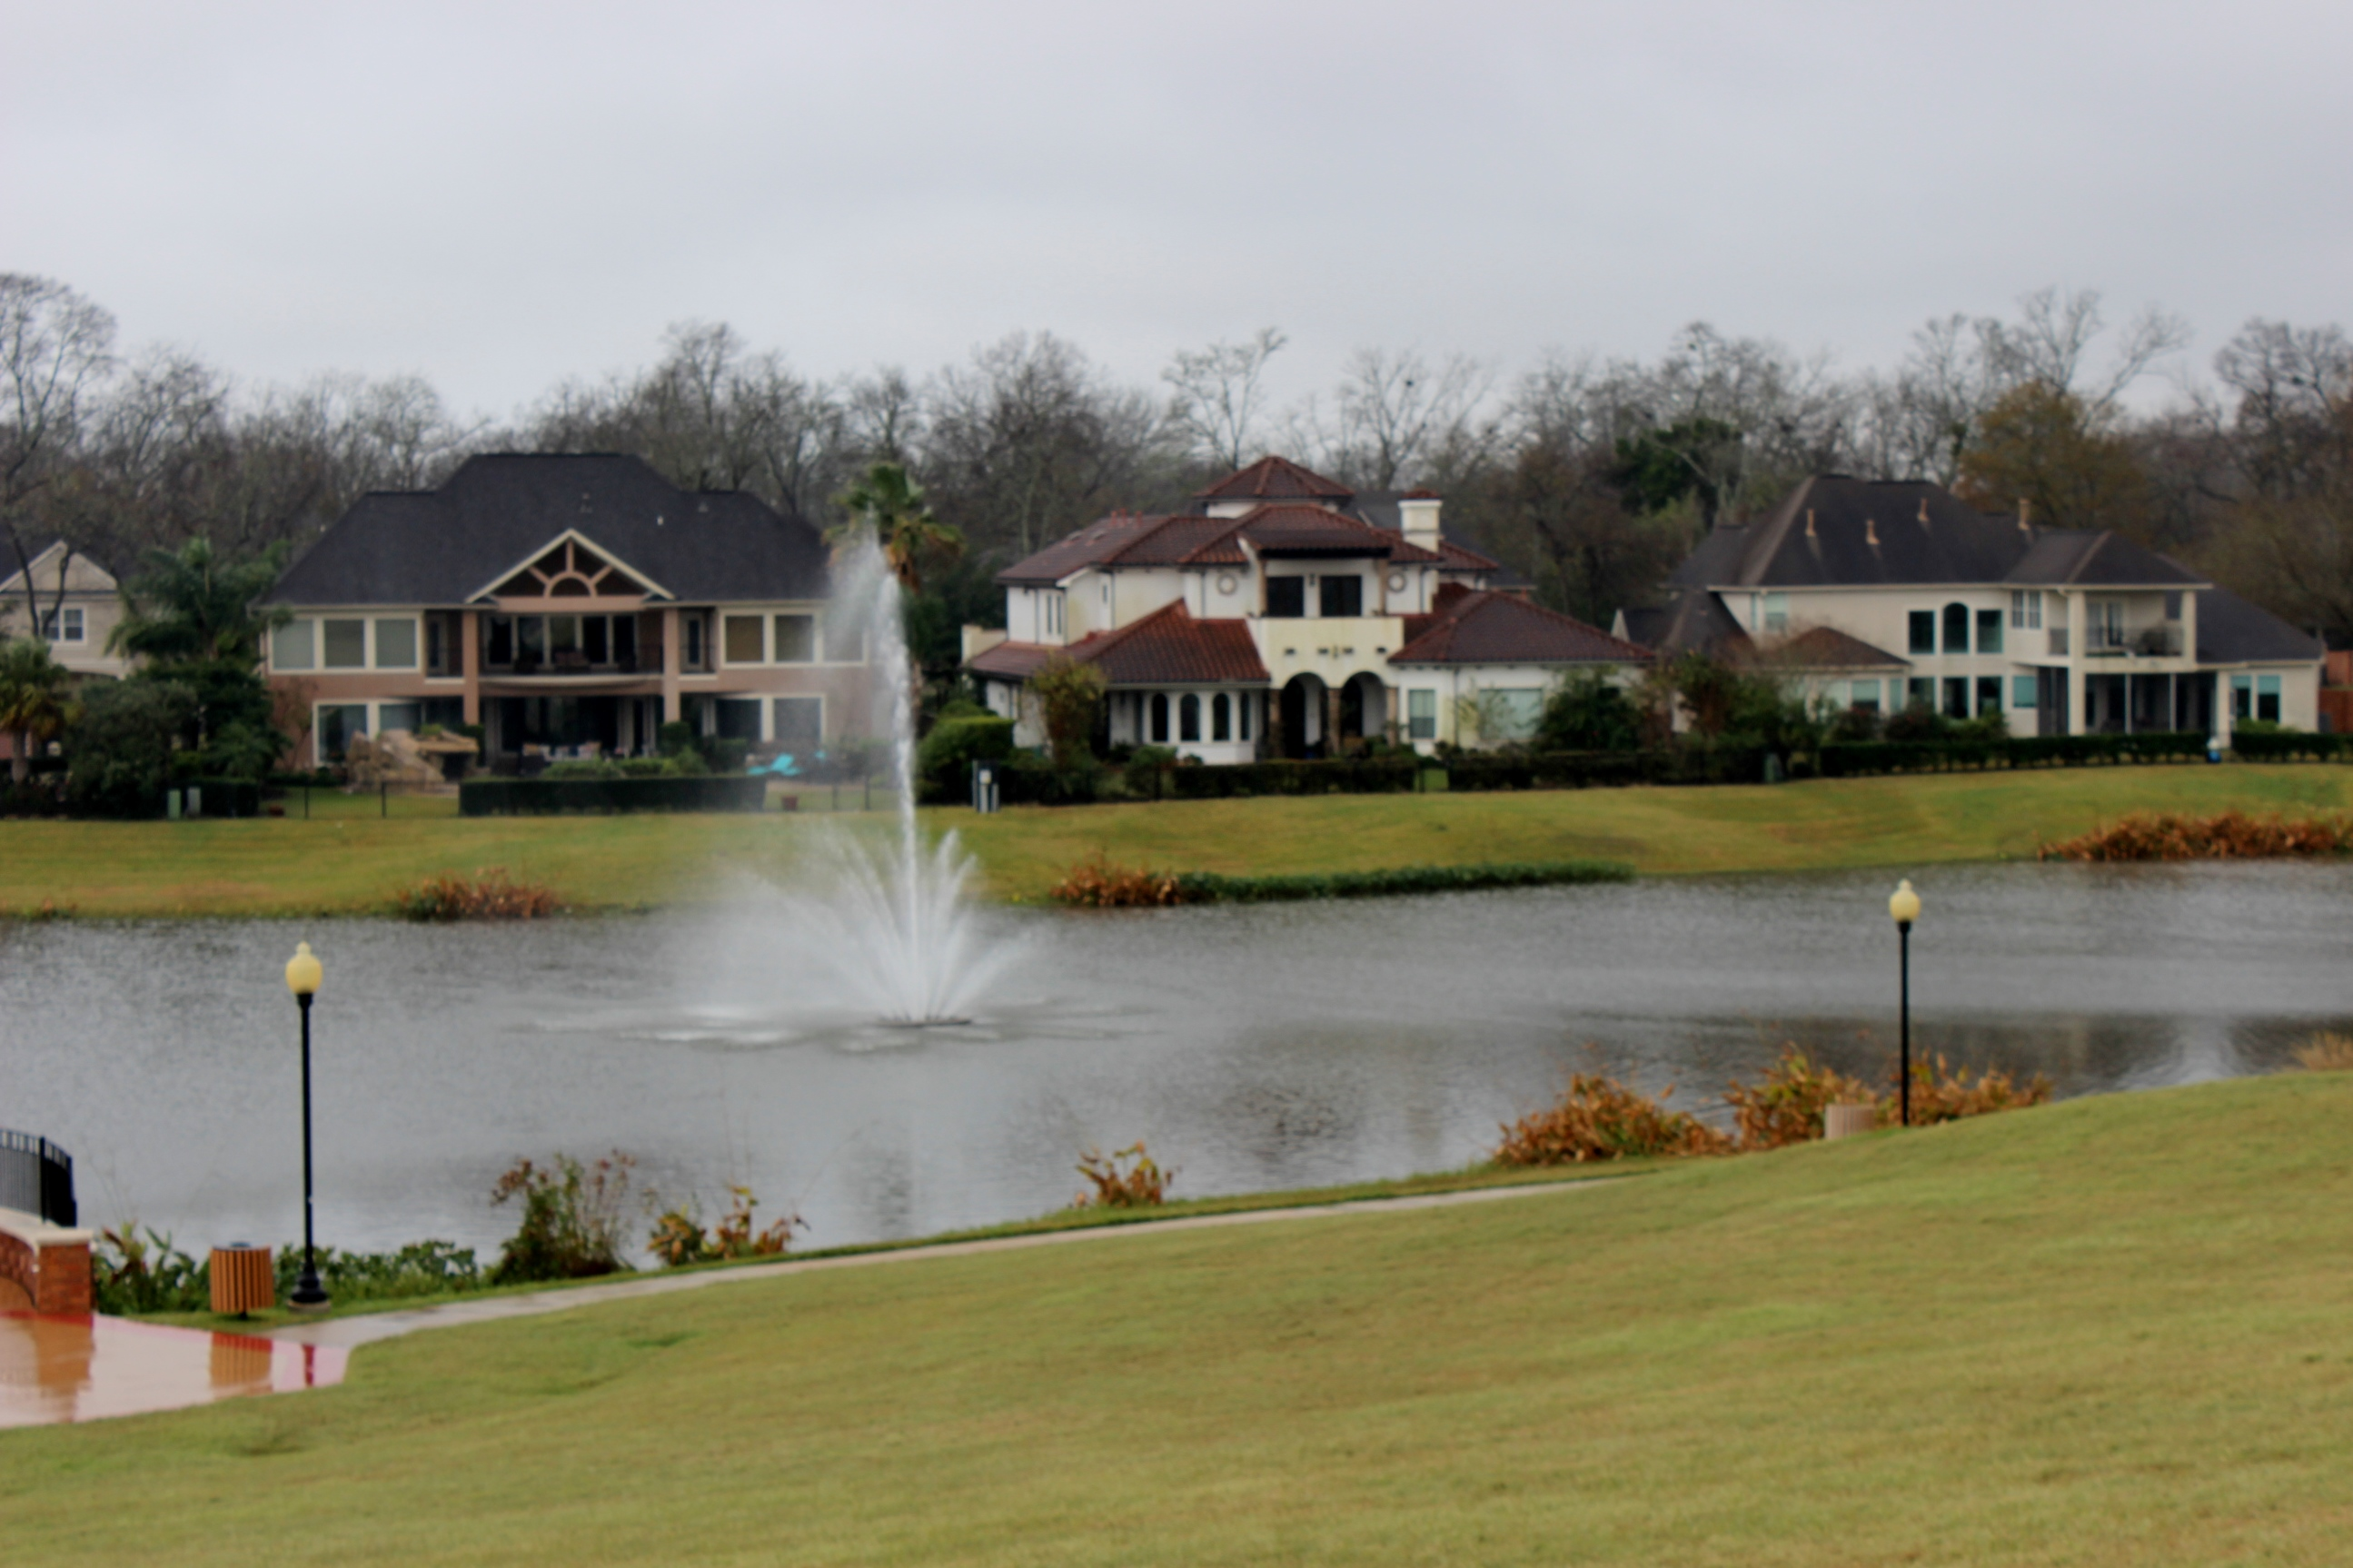 Sienna Plantation covers 16 square miles and has a population of over 20,000